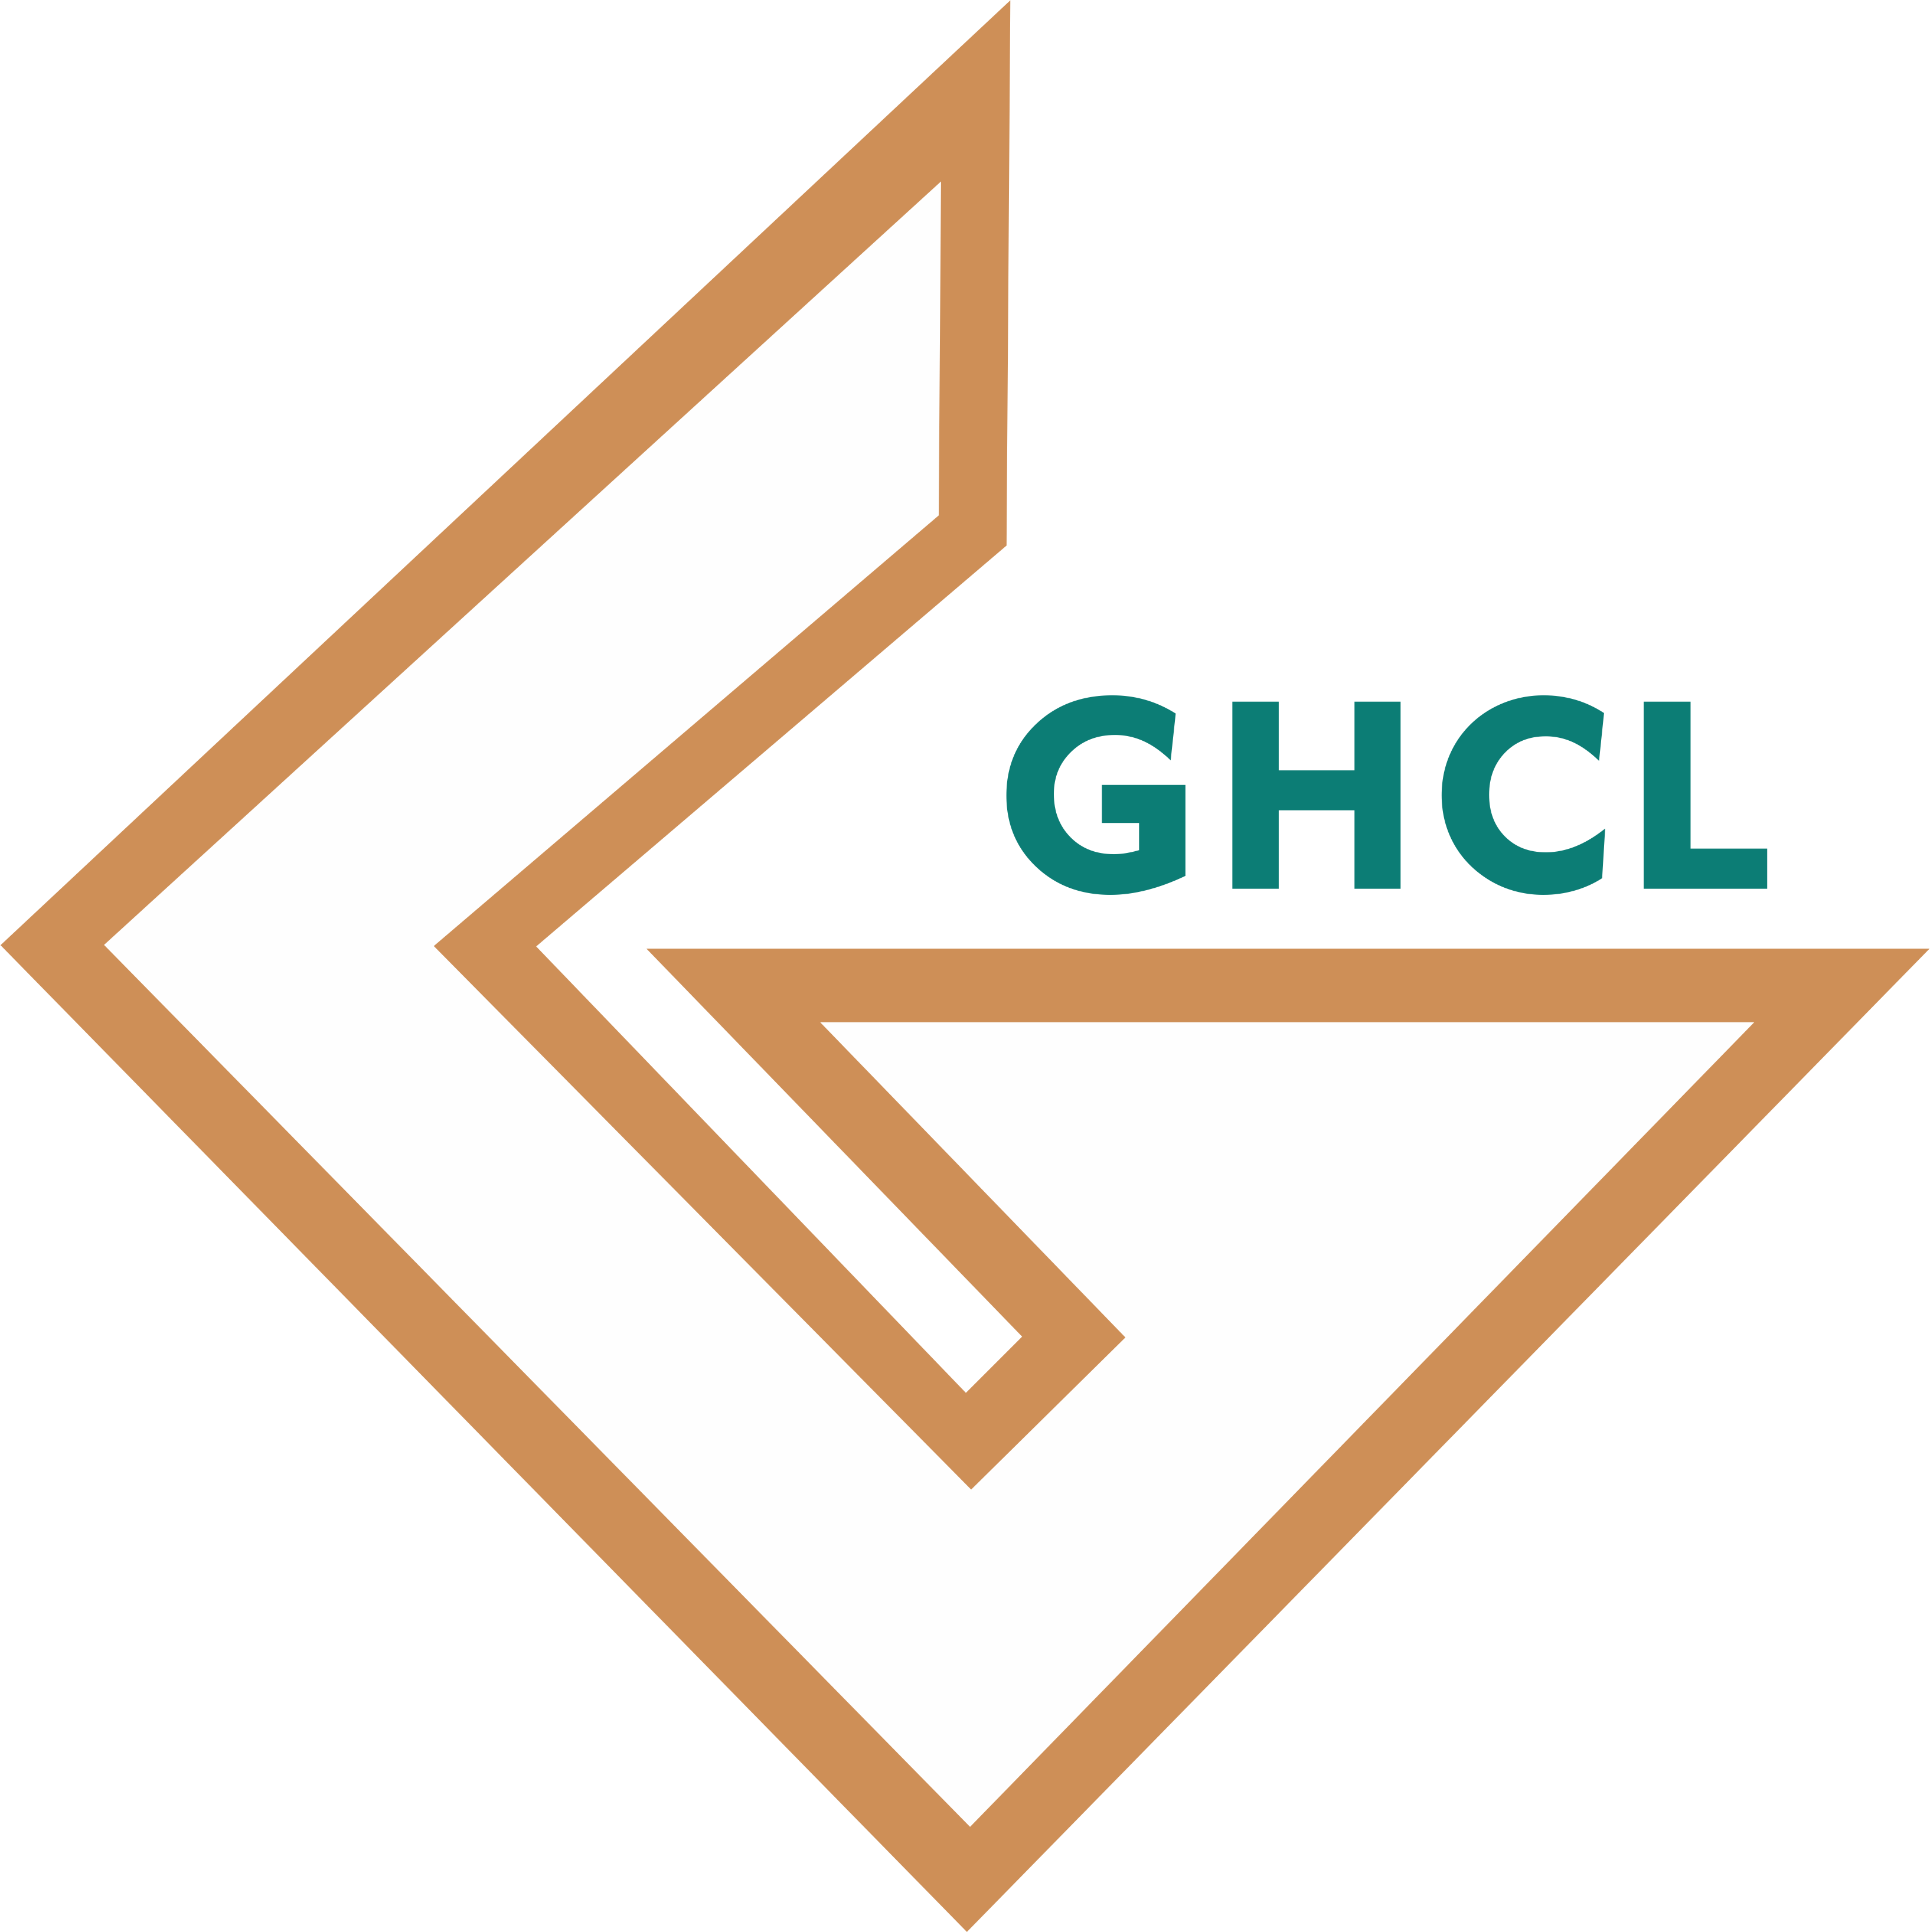 GHCL Limited